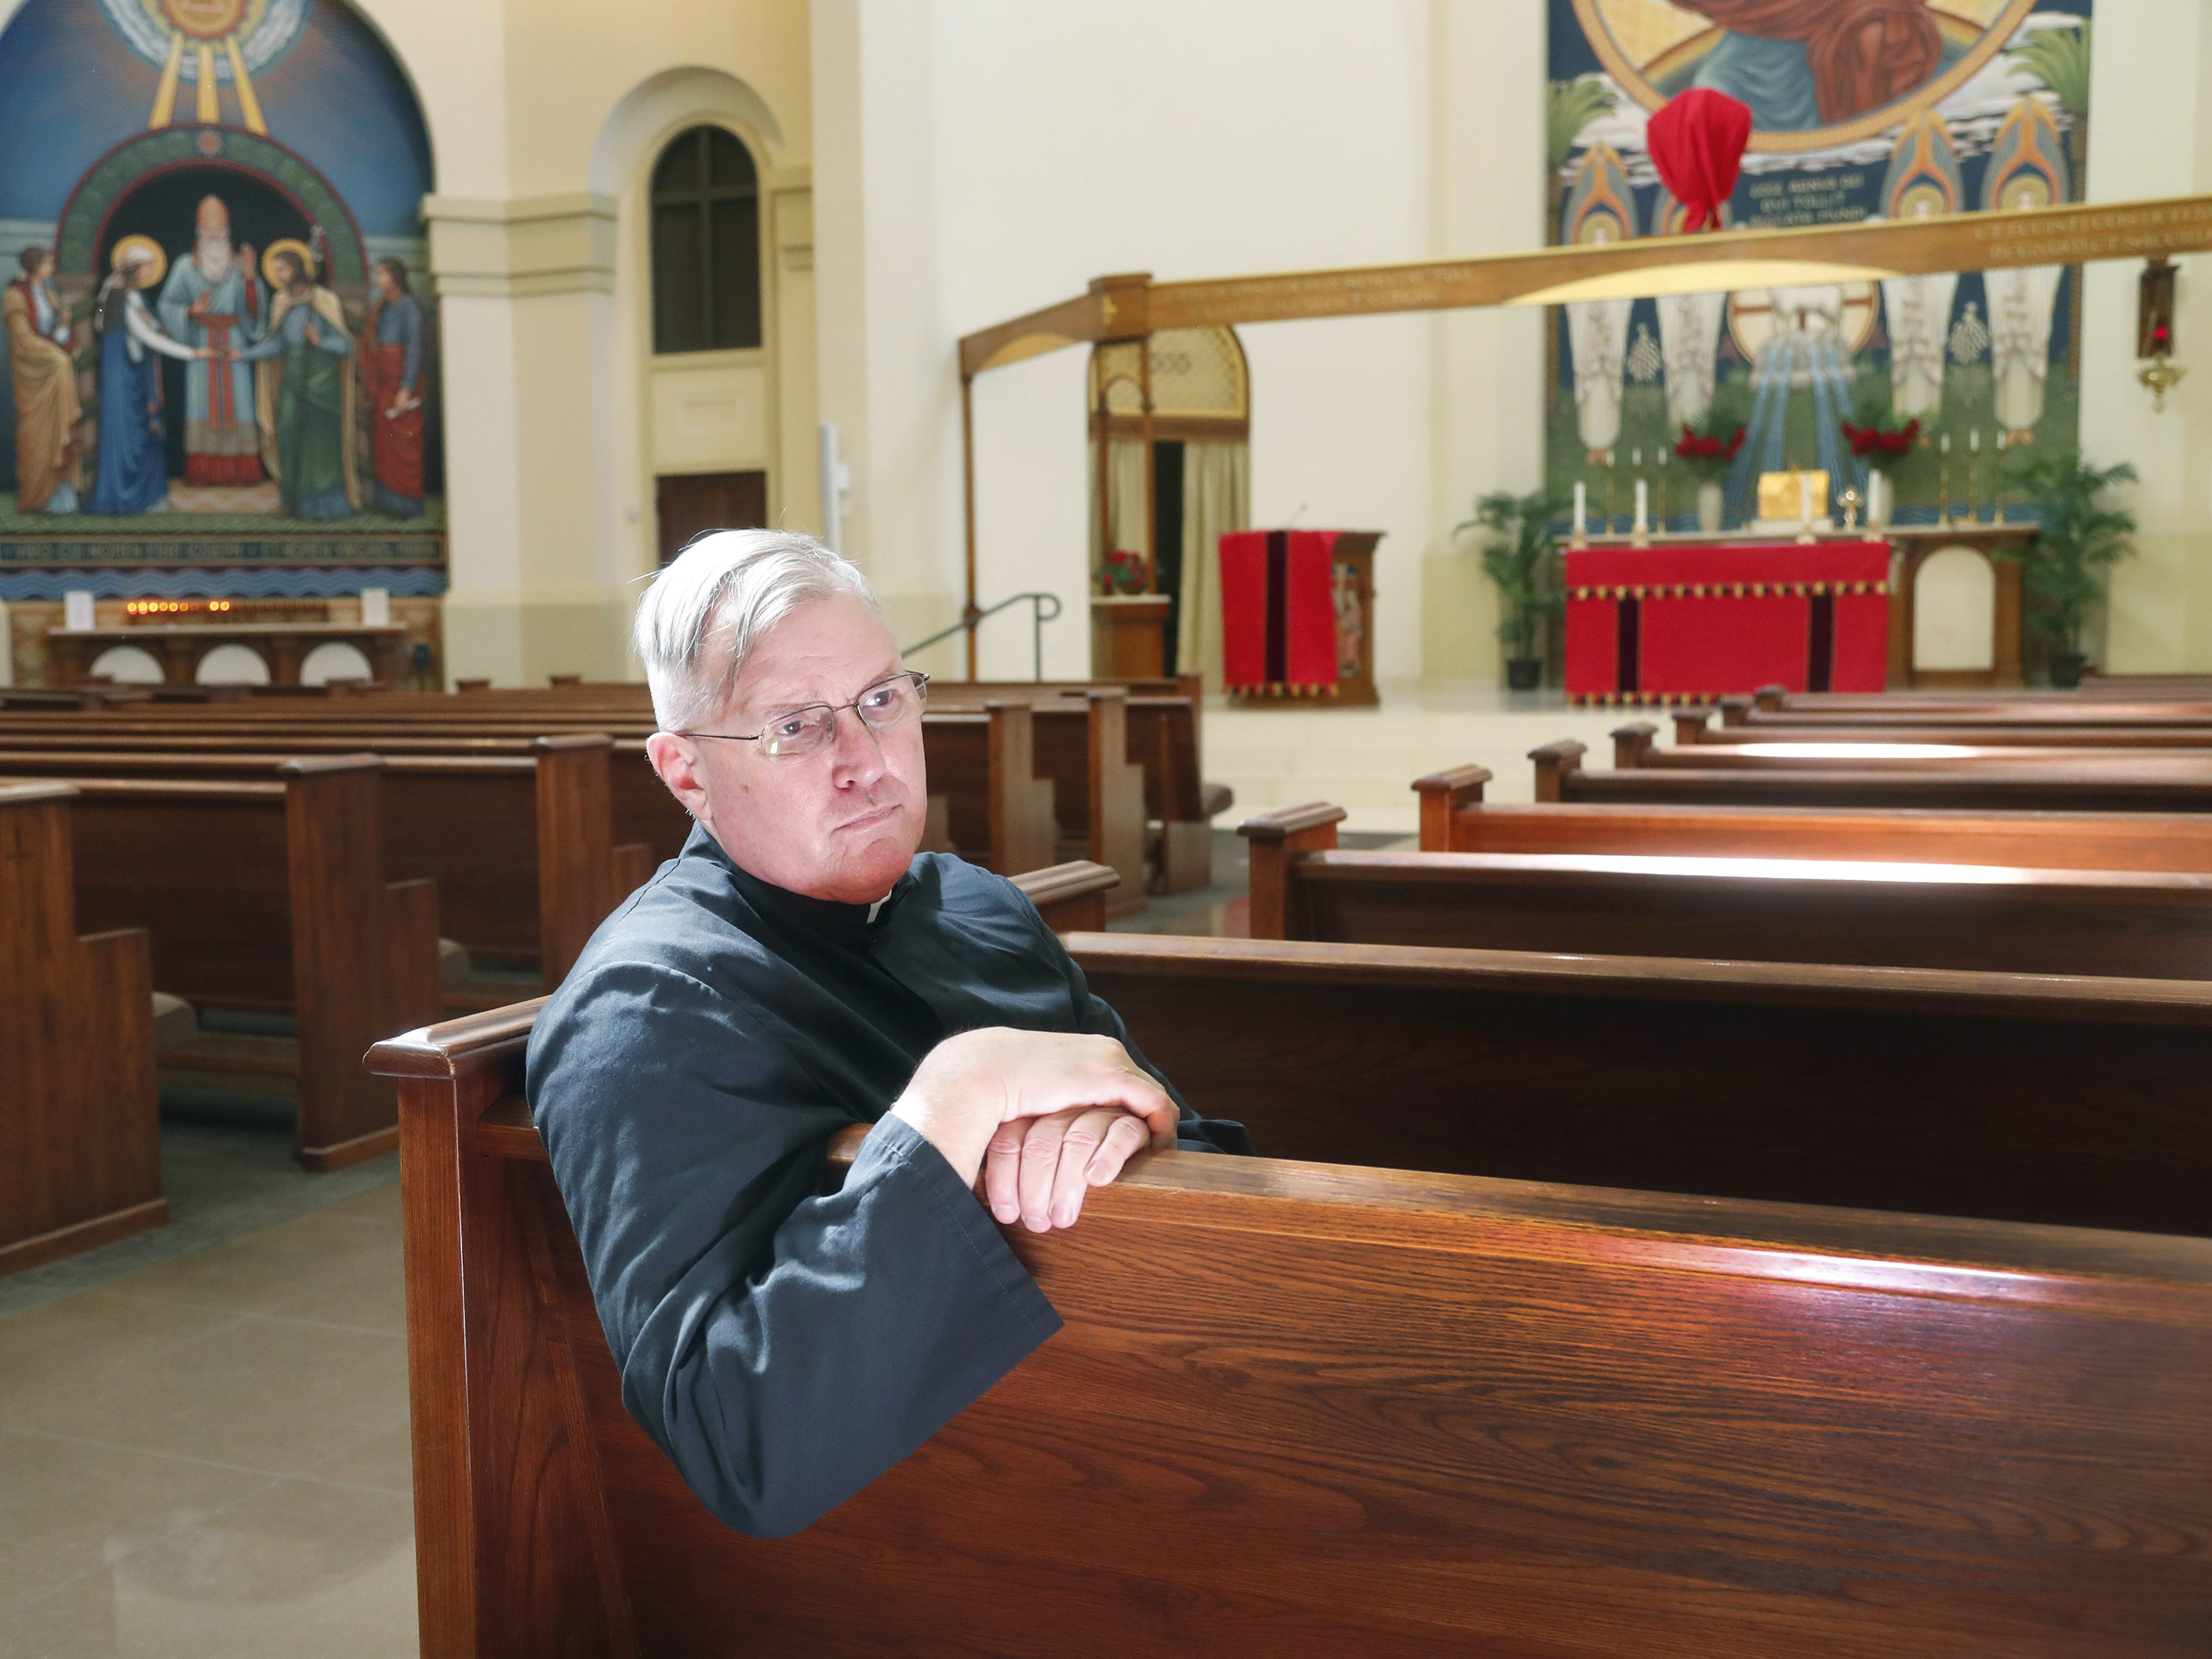 The Rev. Rob Clements sits inside the ASU Catholic Newman Center in Tempe, Ariz. April 14, 2019. In his congregation, he has not seen a trend of members leaving the church because of the sex scandal.